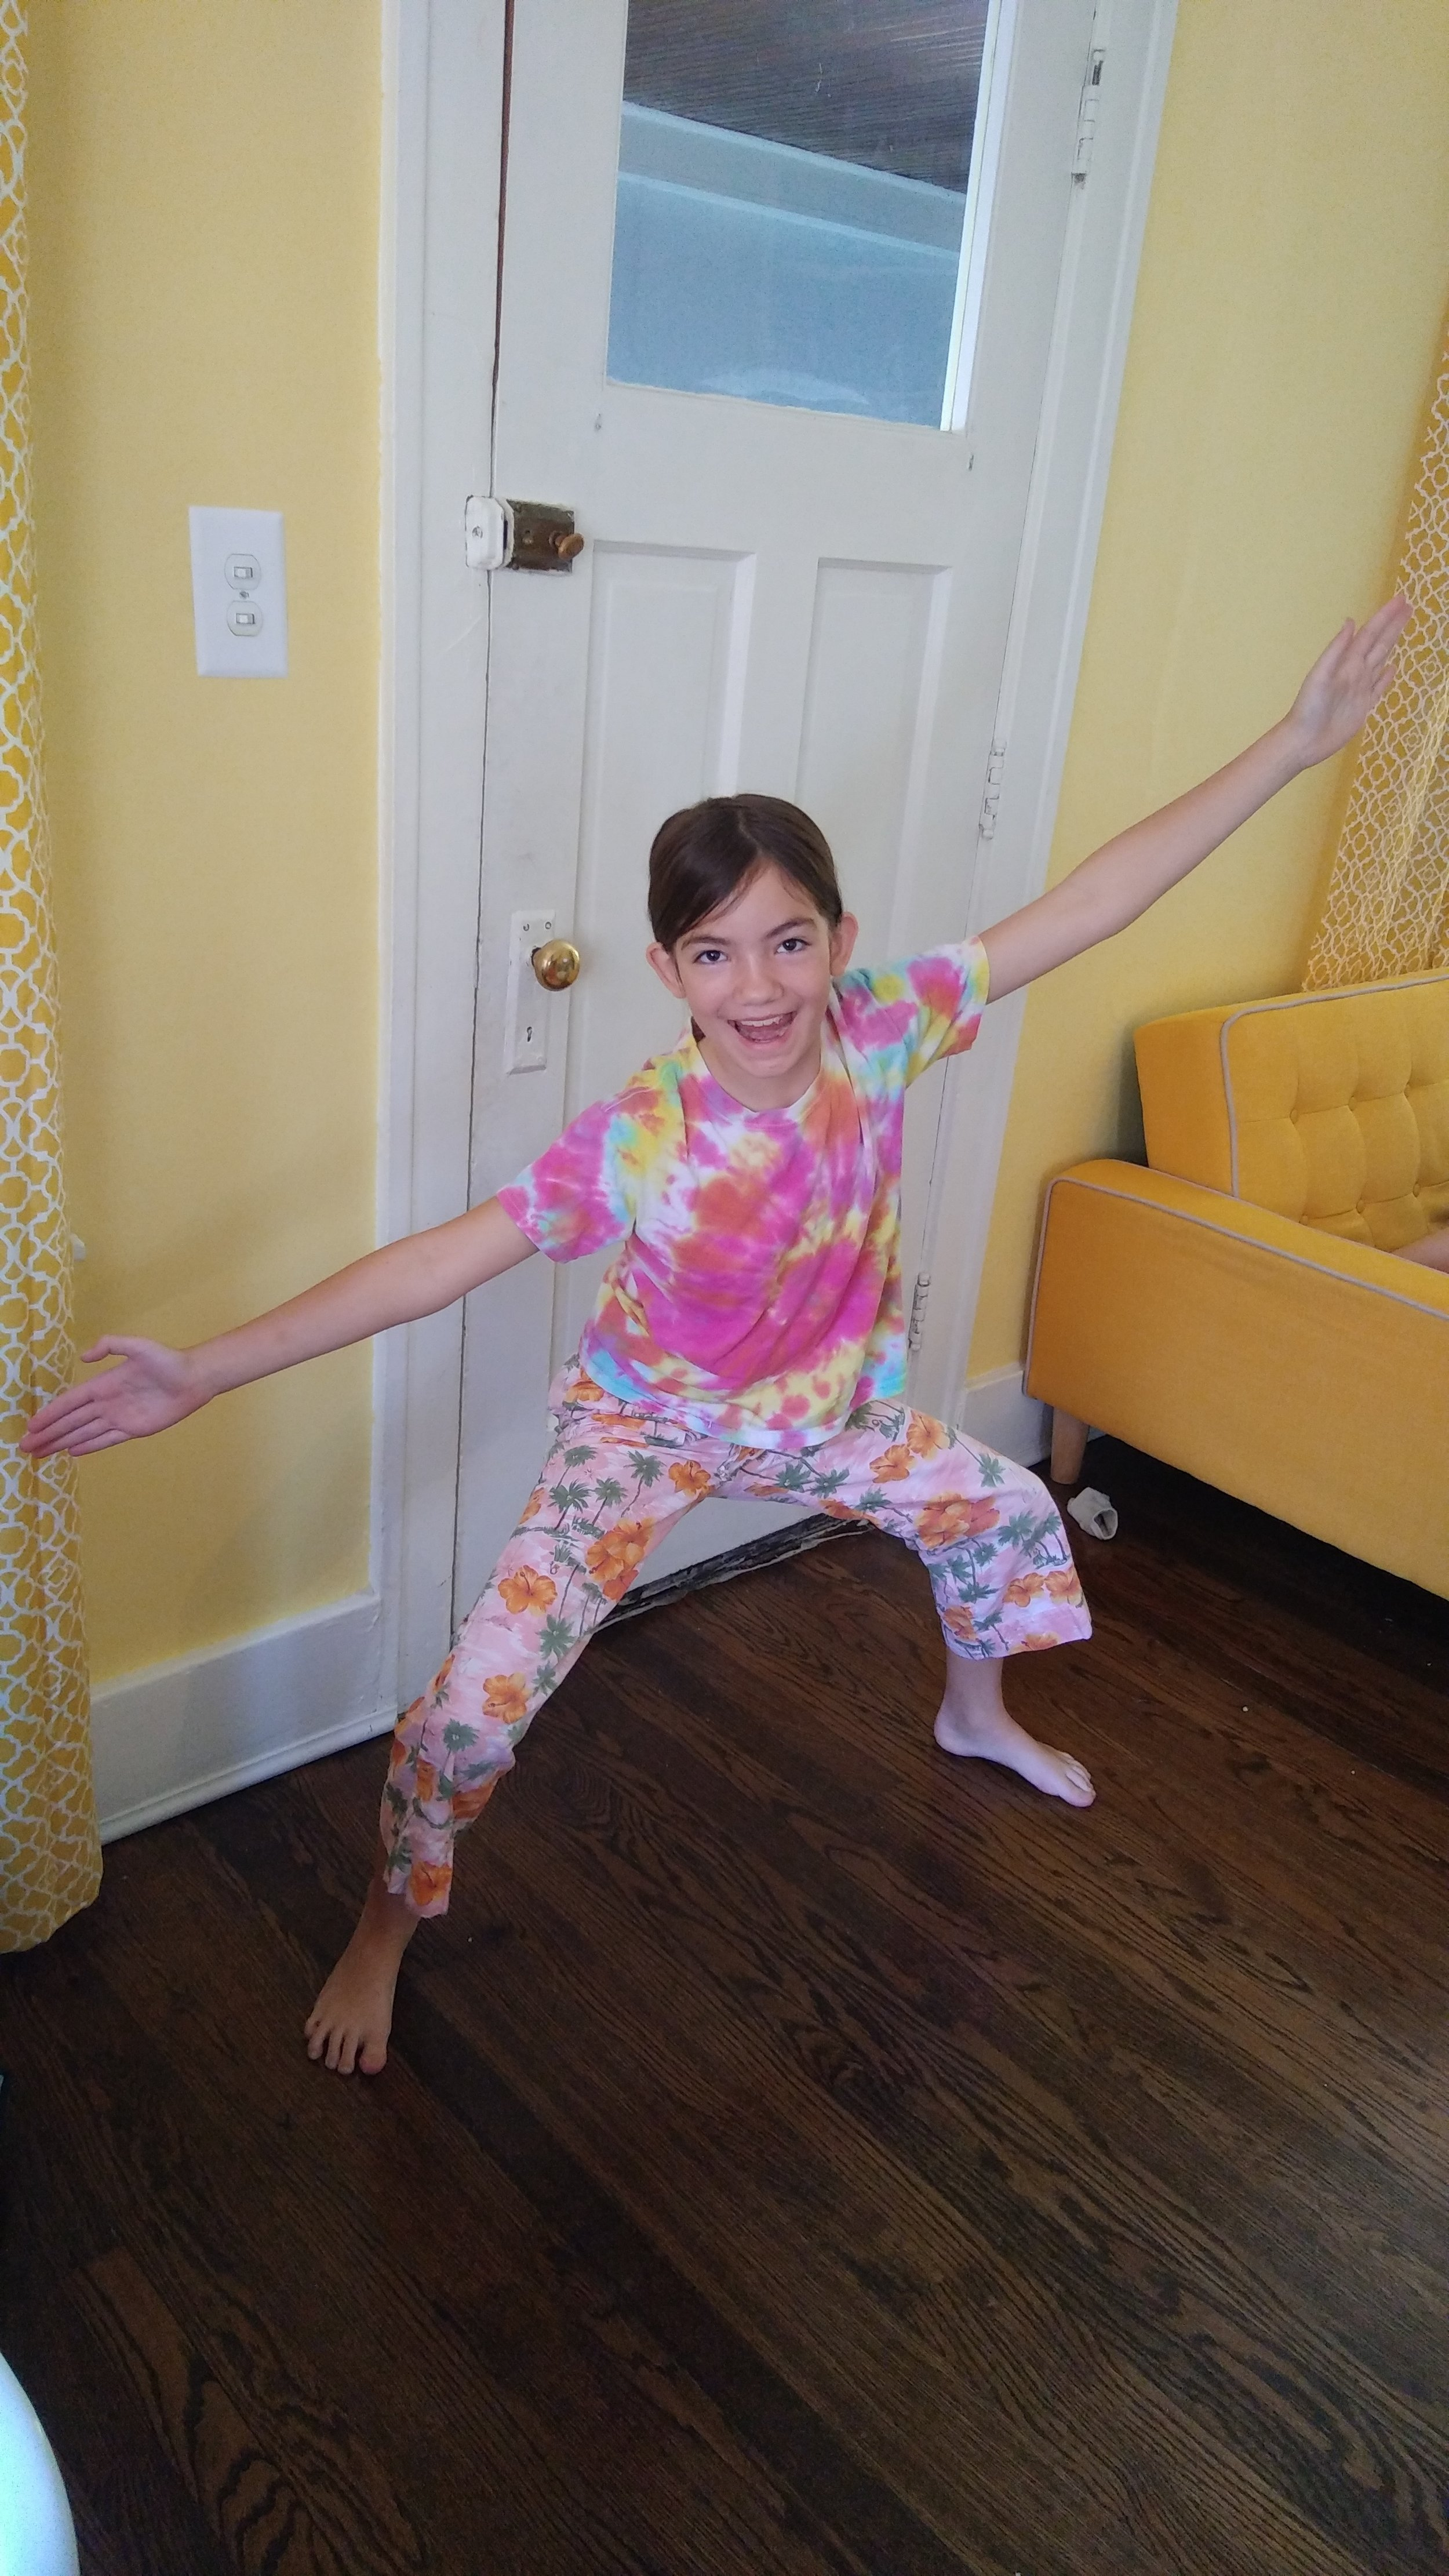 Analise Schroeder - Analise is a 10 year old Michigander. She lives with her mom, dad, brother, and bird. She loves the color yellow, Carmel candies, and puppy dogs. She wishes there were locker puppies in every locker at her school.